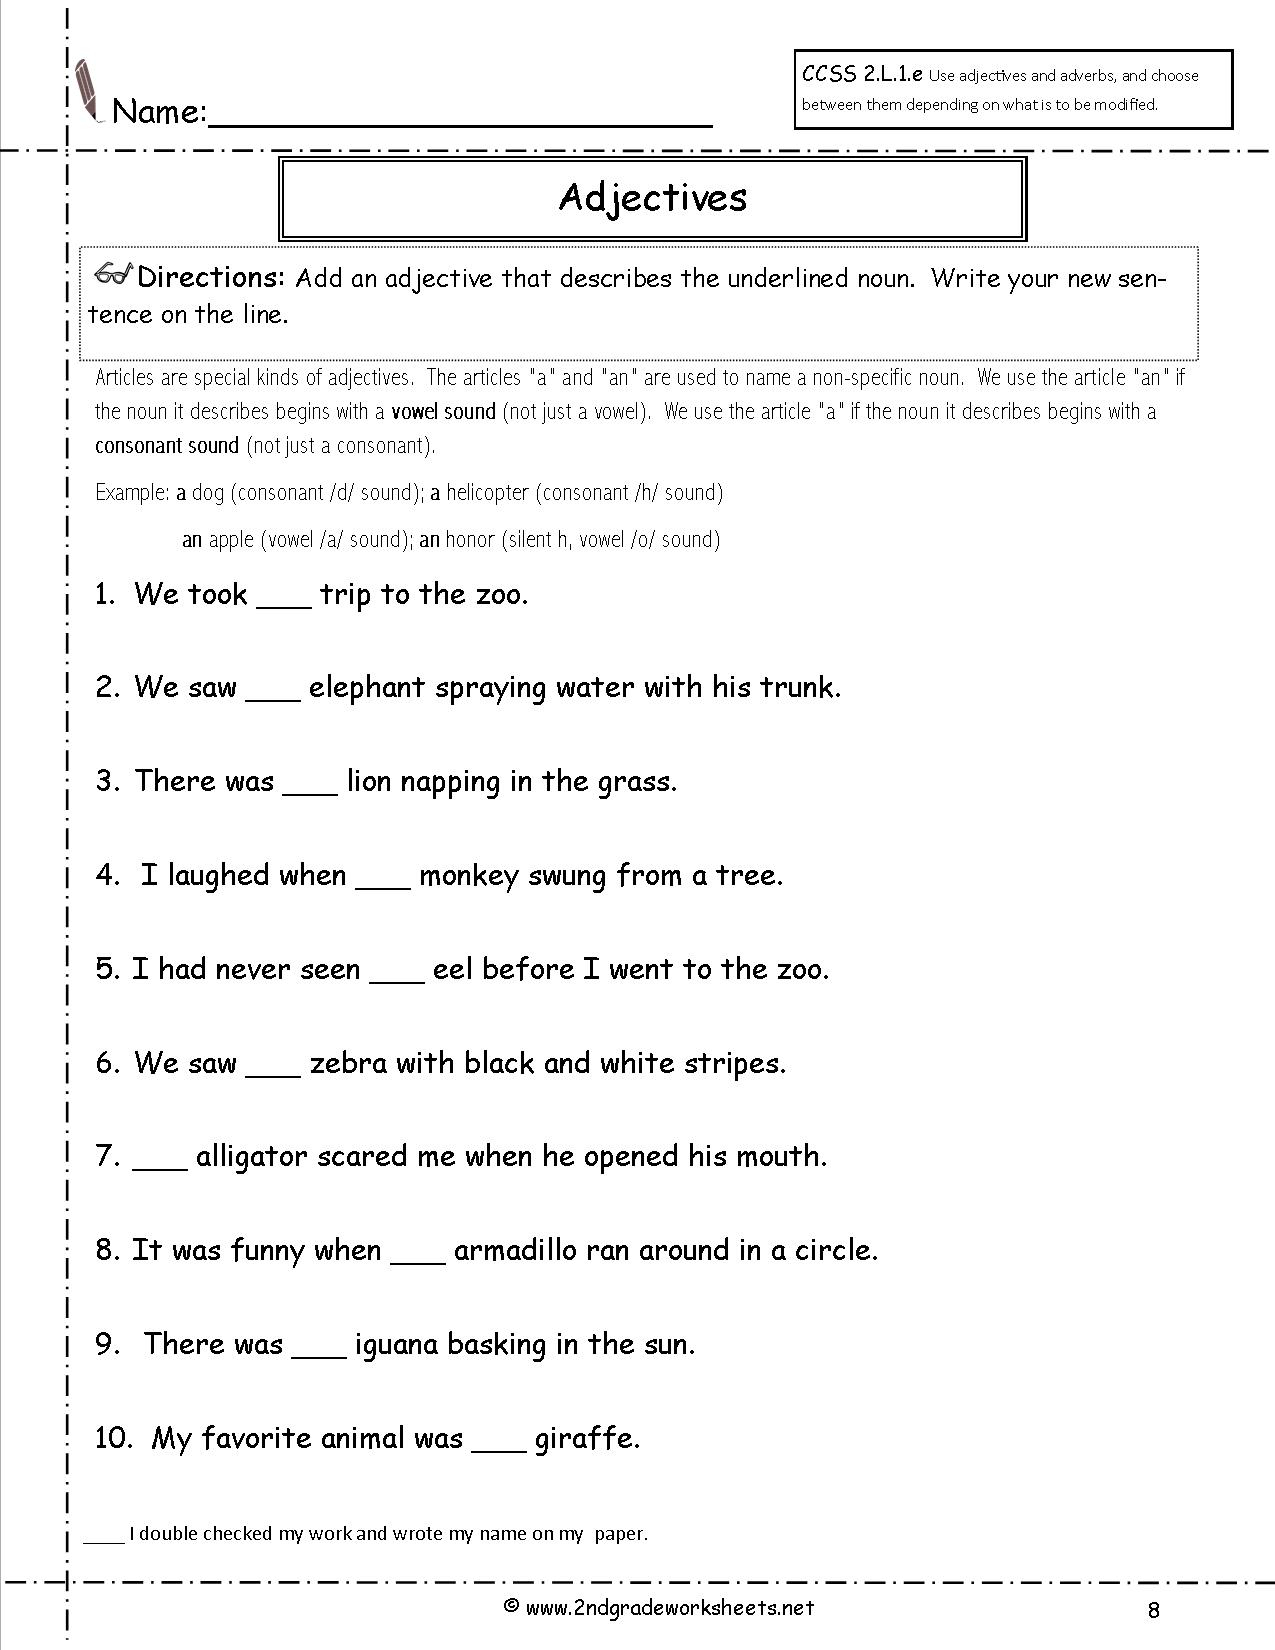 Free Language/grammar Worksheets And Printouts | Free Printable Grammar Worksheets For 2Nd Grade